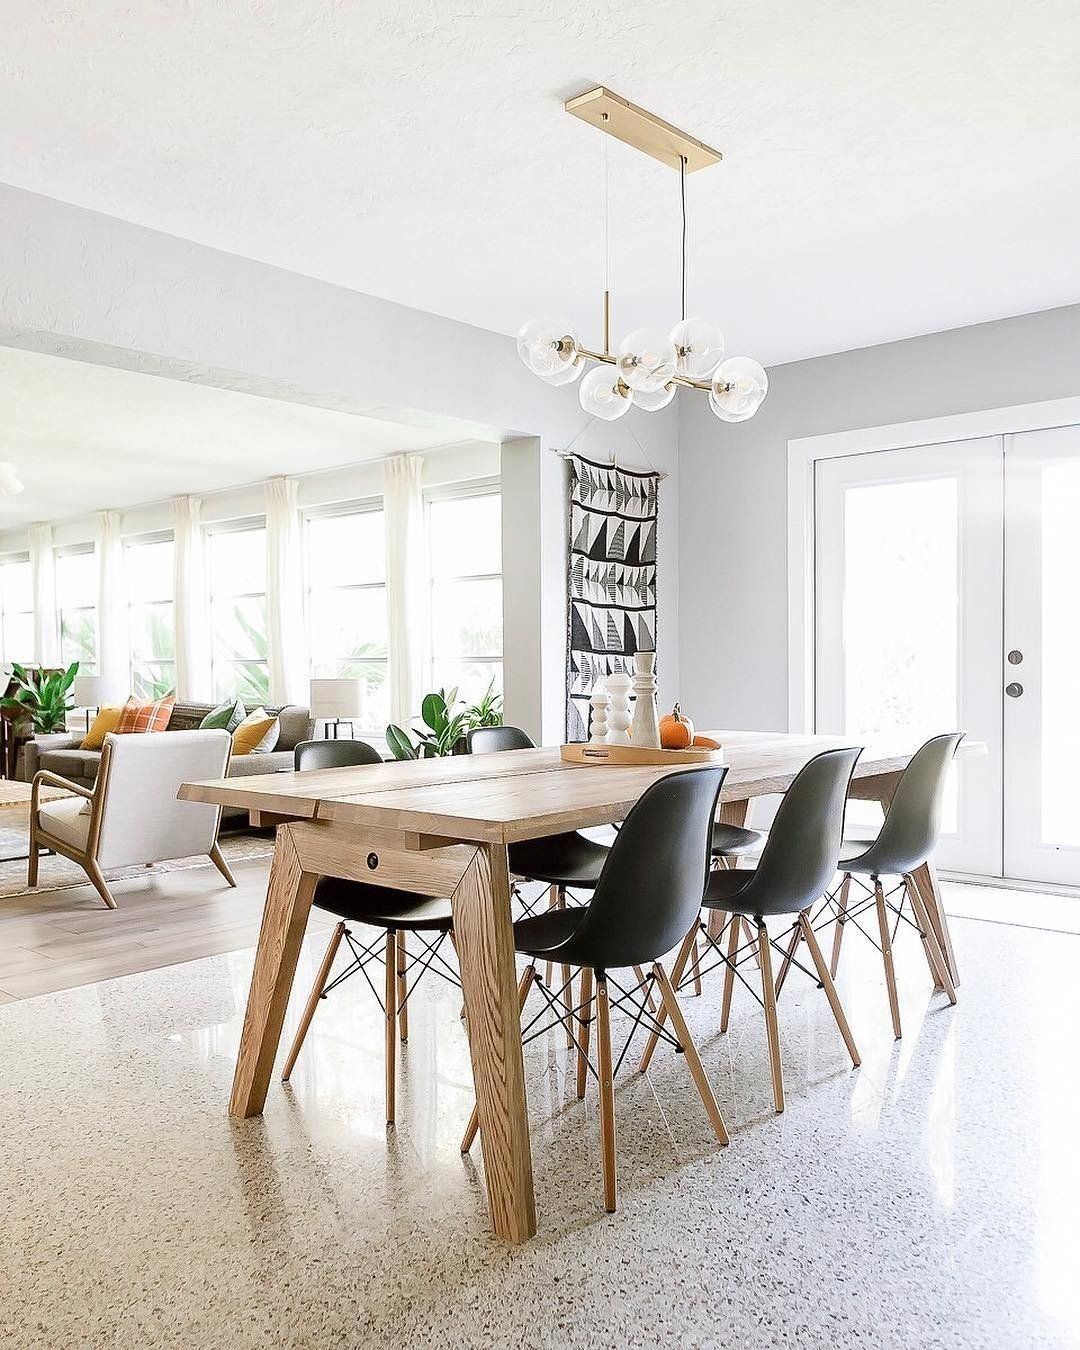 Madera Oak Dining Table Extendable Dining Tables Article Modern Mid Century And Scandinavia Dining Room Small Oak Dining Table Scandinavian Dining Room